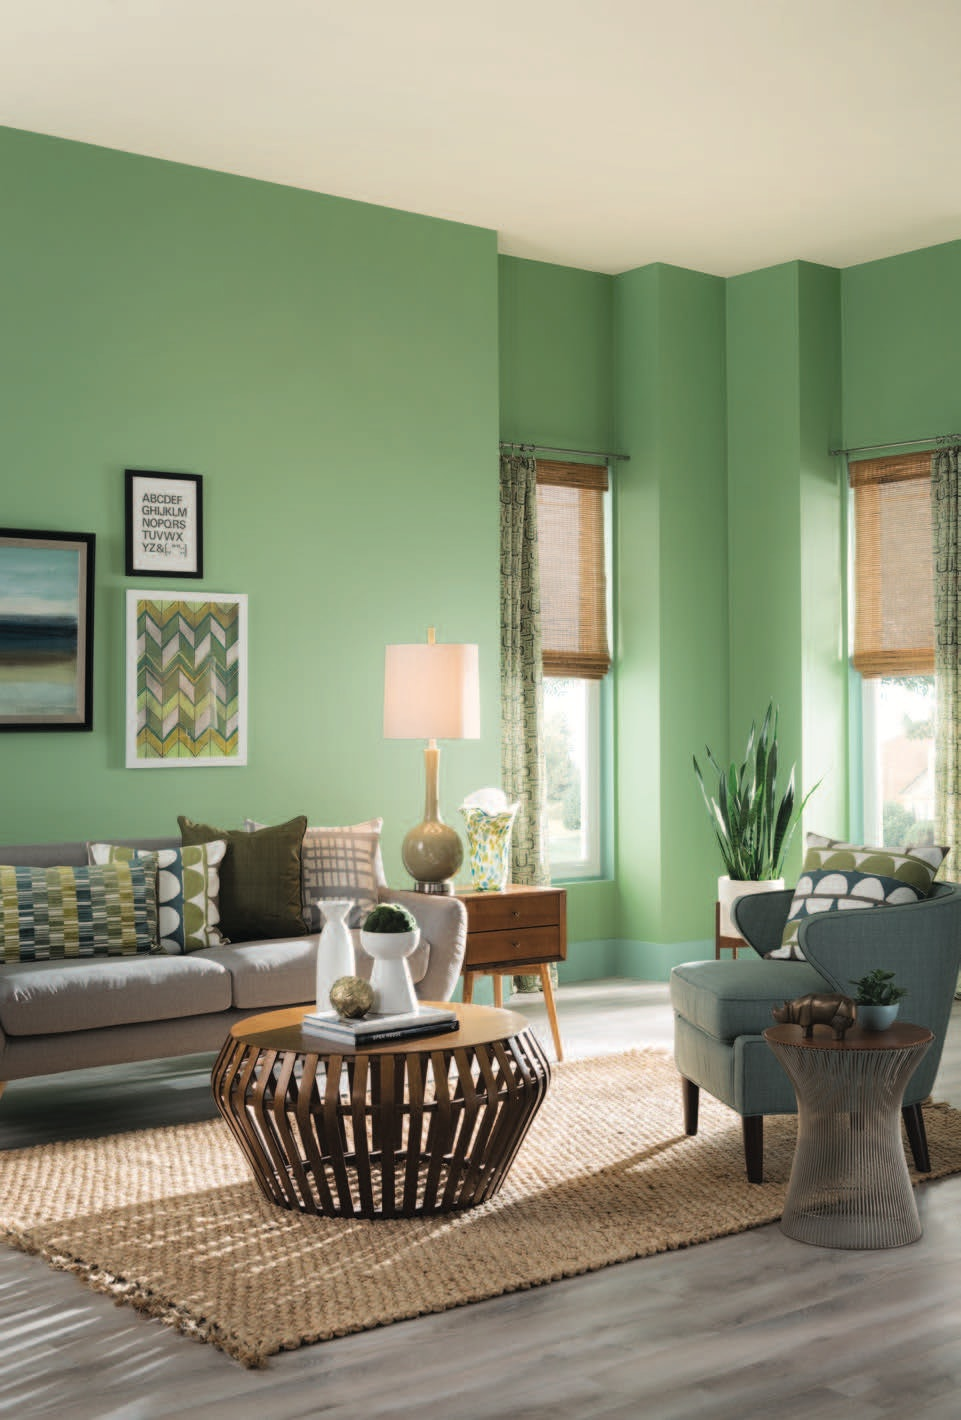 how to paint your living room with ottoman walls make any space look bigger ceiling a lighter color than the rest of and suddenly it will seem like you have extra high ceilings